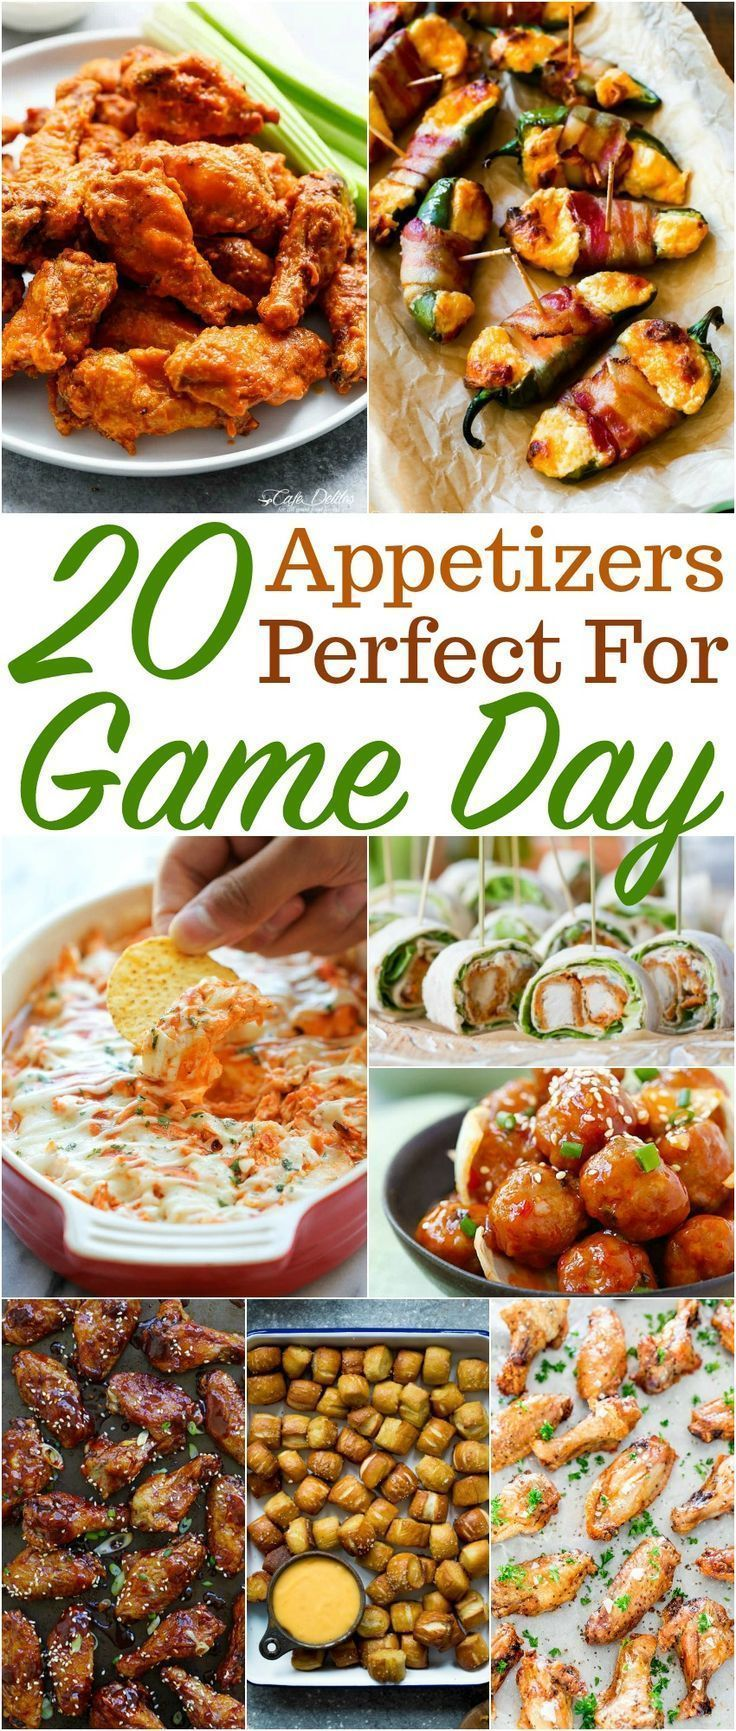 Easy Superbowl or Game Day Snack Ideas